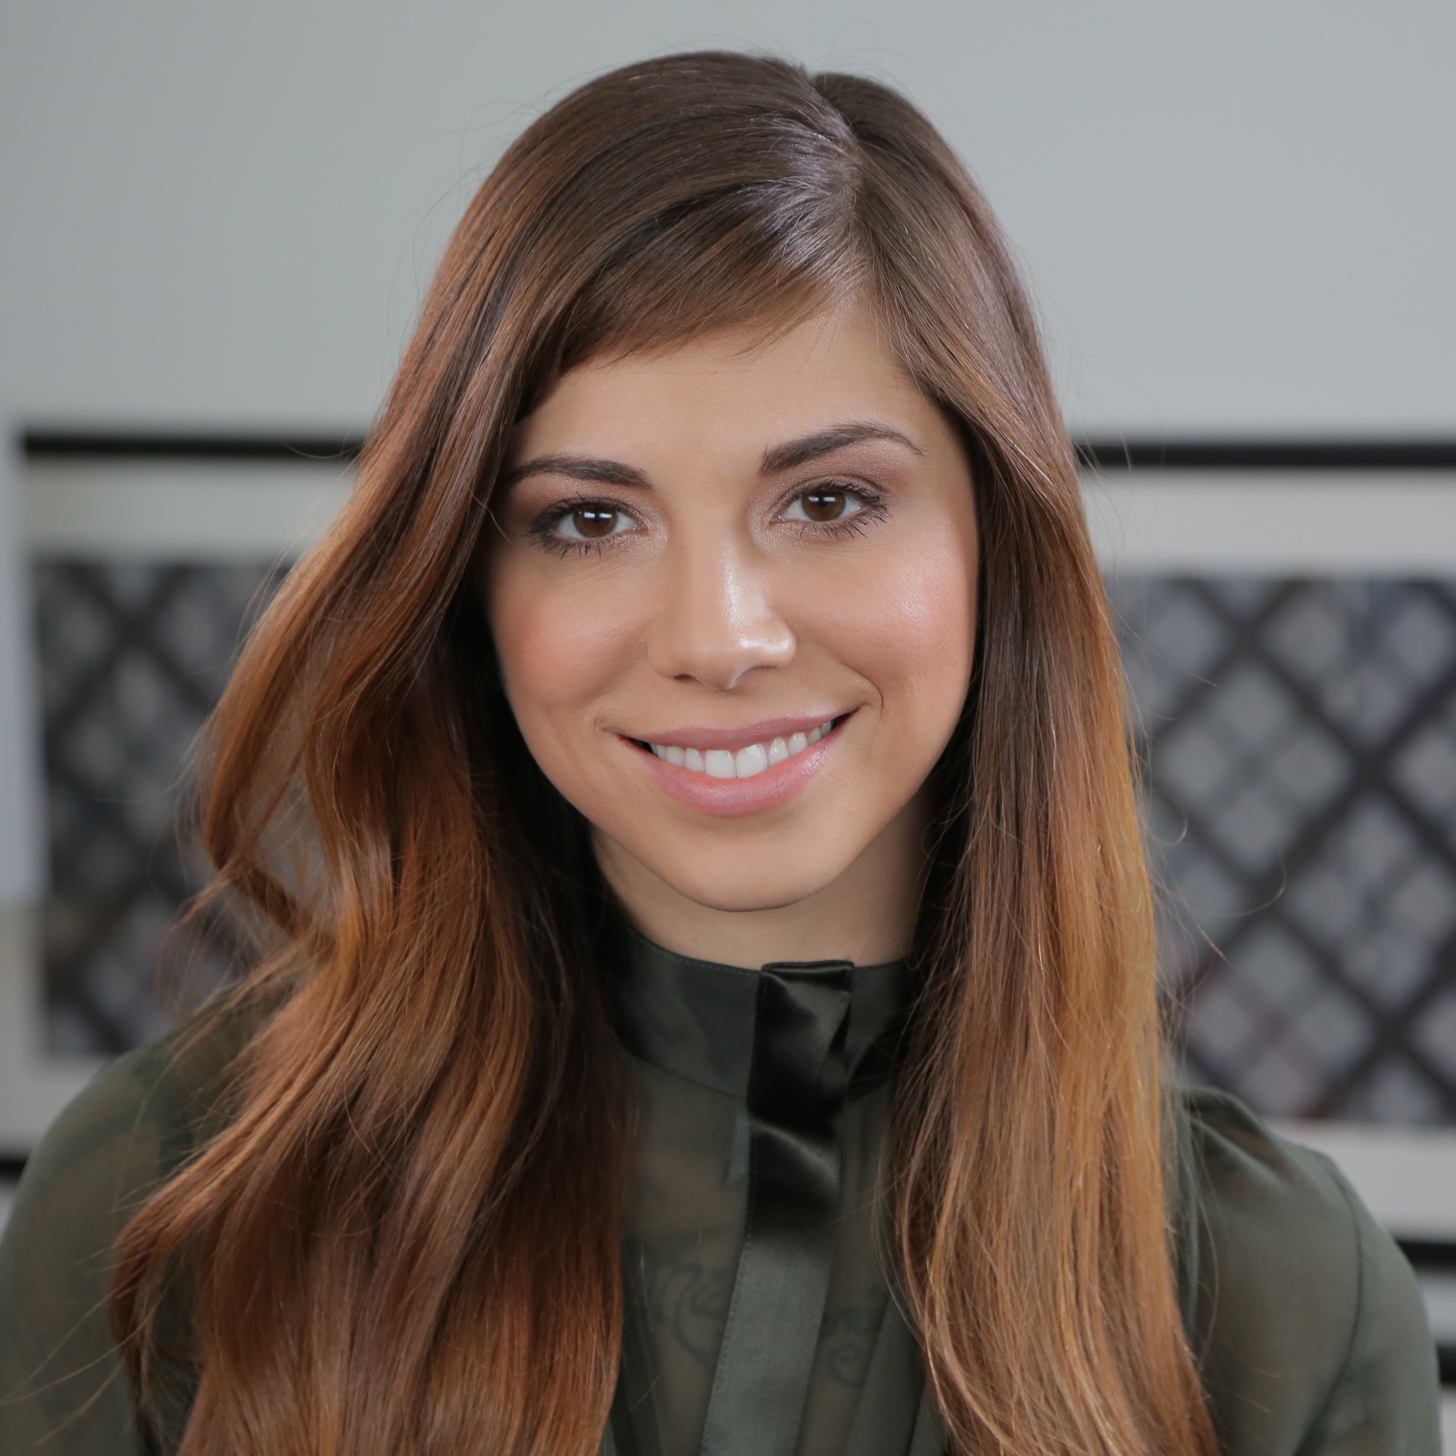 Singer-songwriter Christina Perri - age: 31